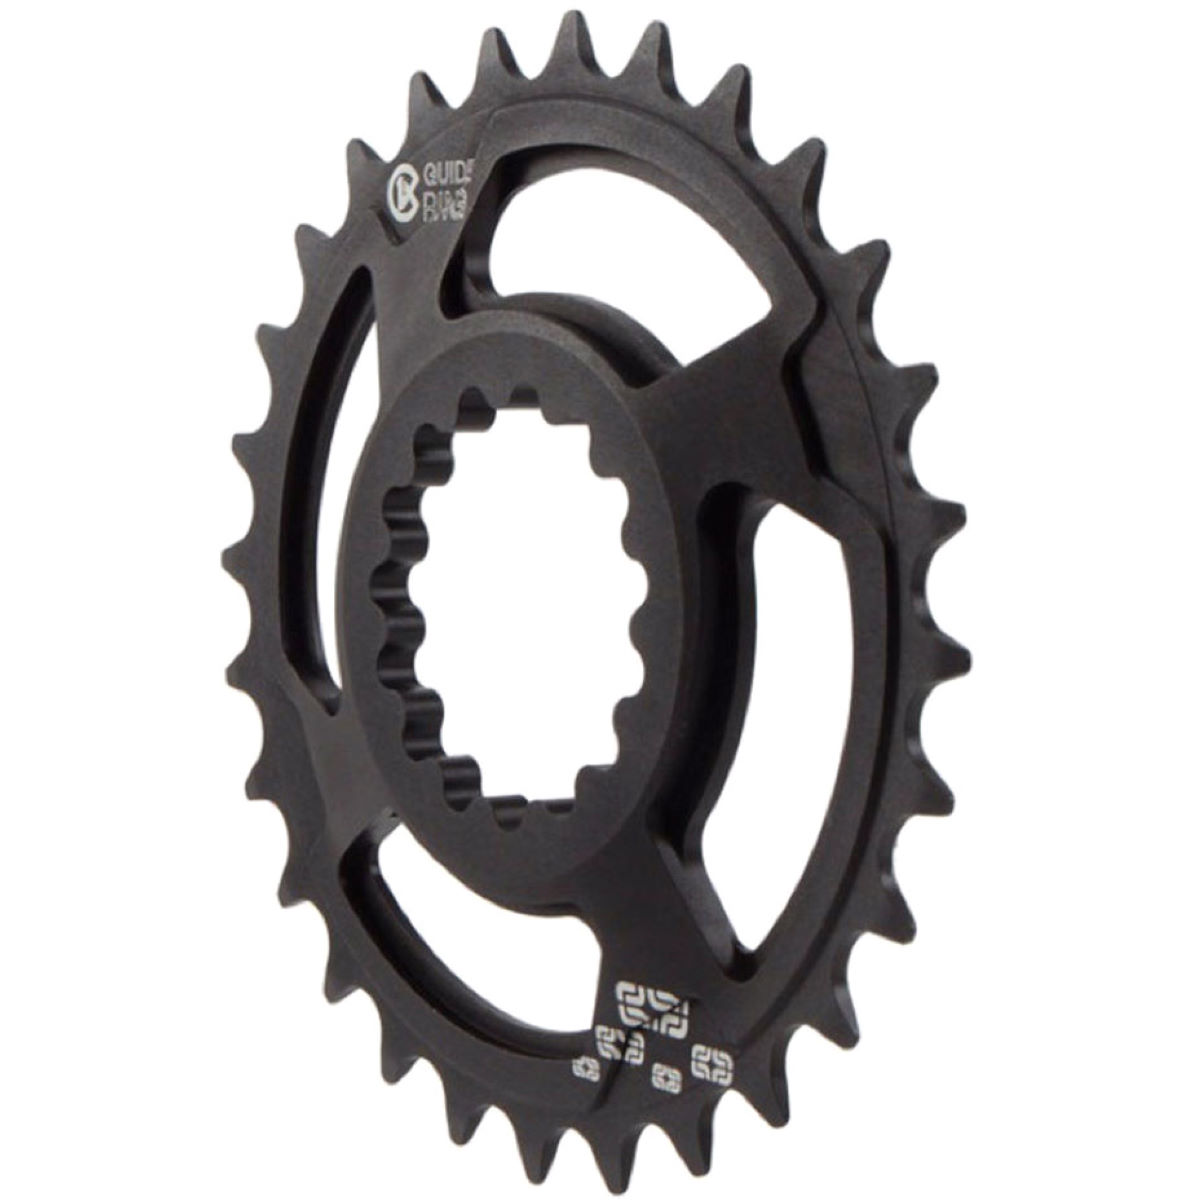 Plateau de guidage e.thirteen Fixation directe - 30t 9/10/11 Speed